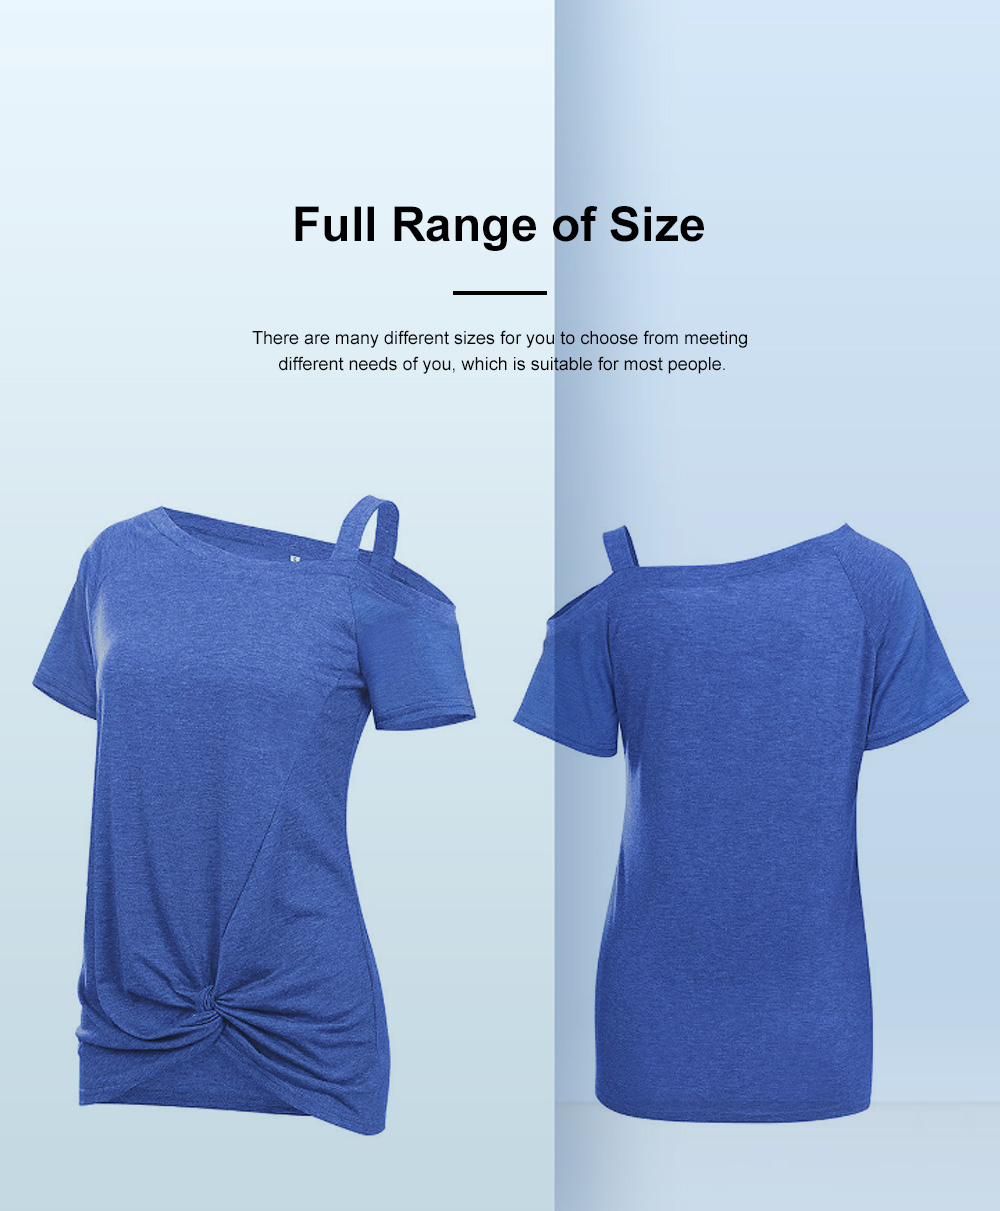 Minimalist Fashion Kink Decoration Off-Shoulder Women T-shirt, Ultra-soft Casual Pure Color Tops for Ladies 2